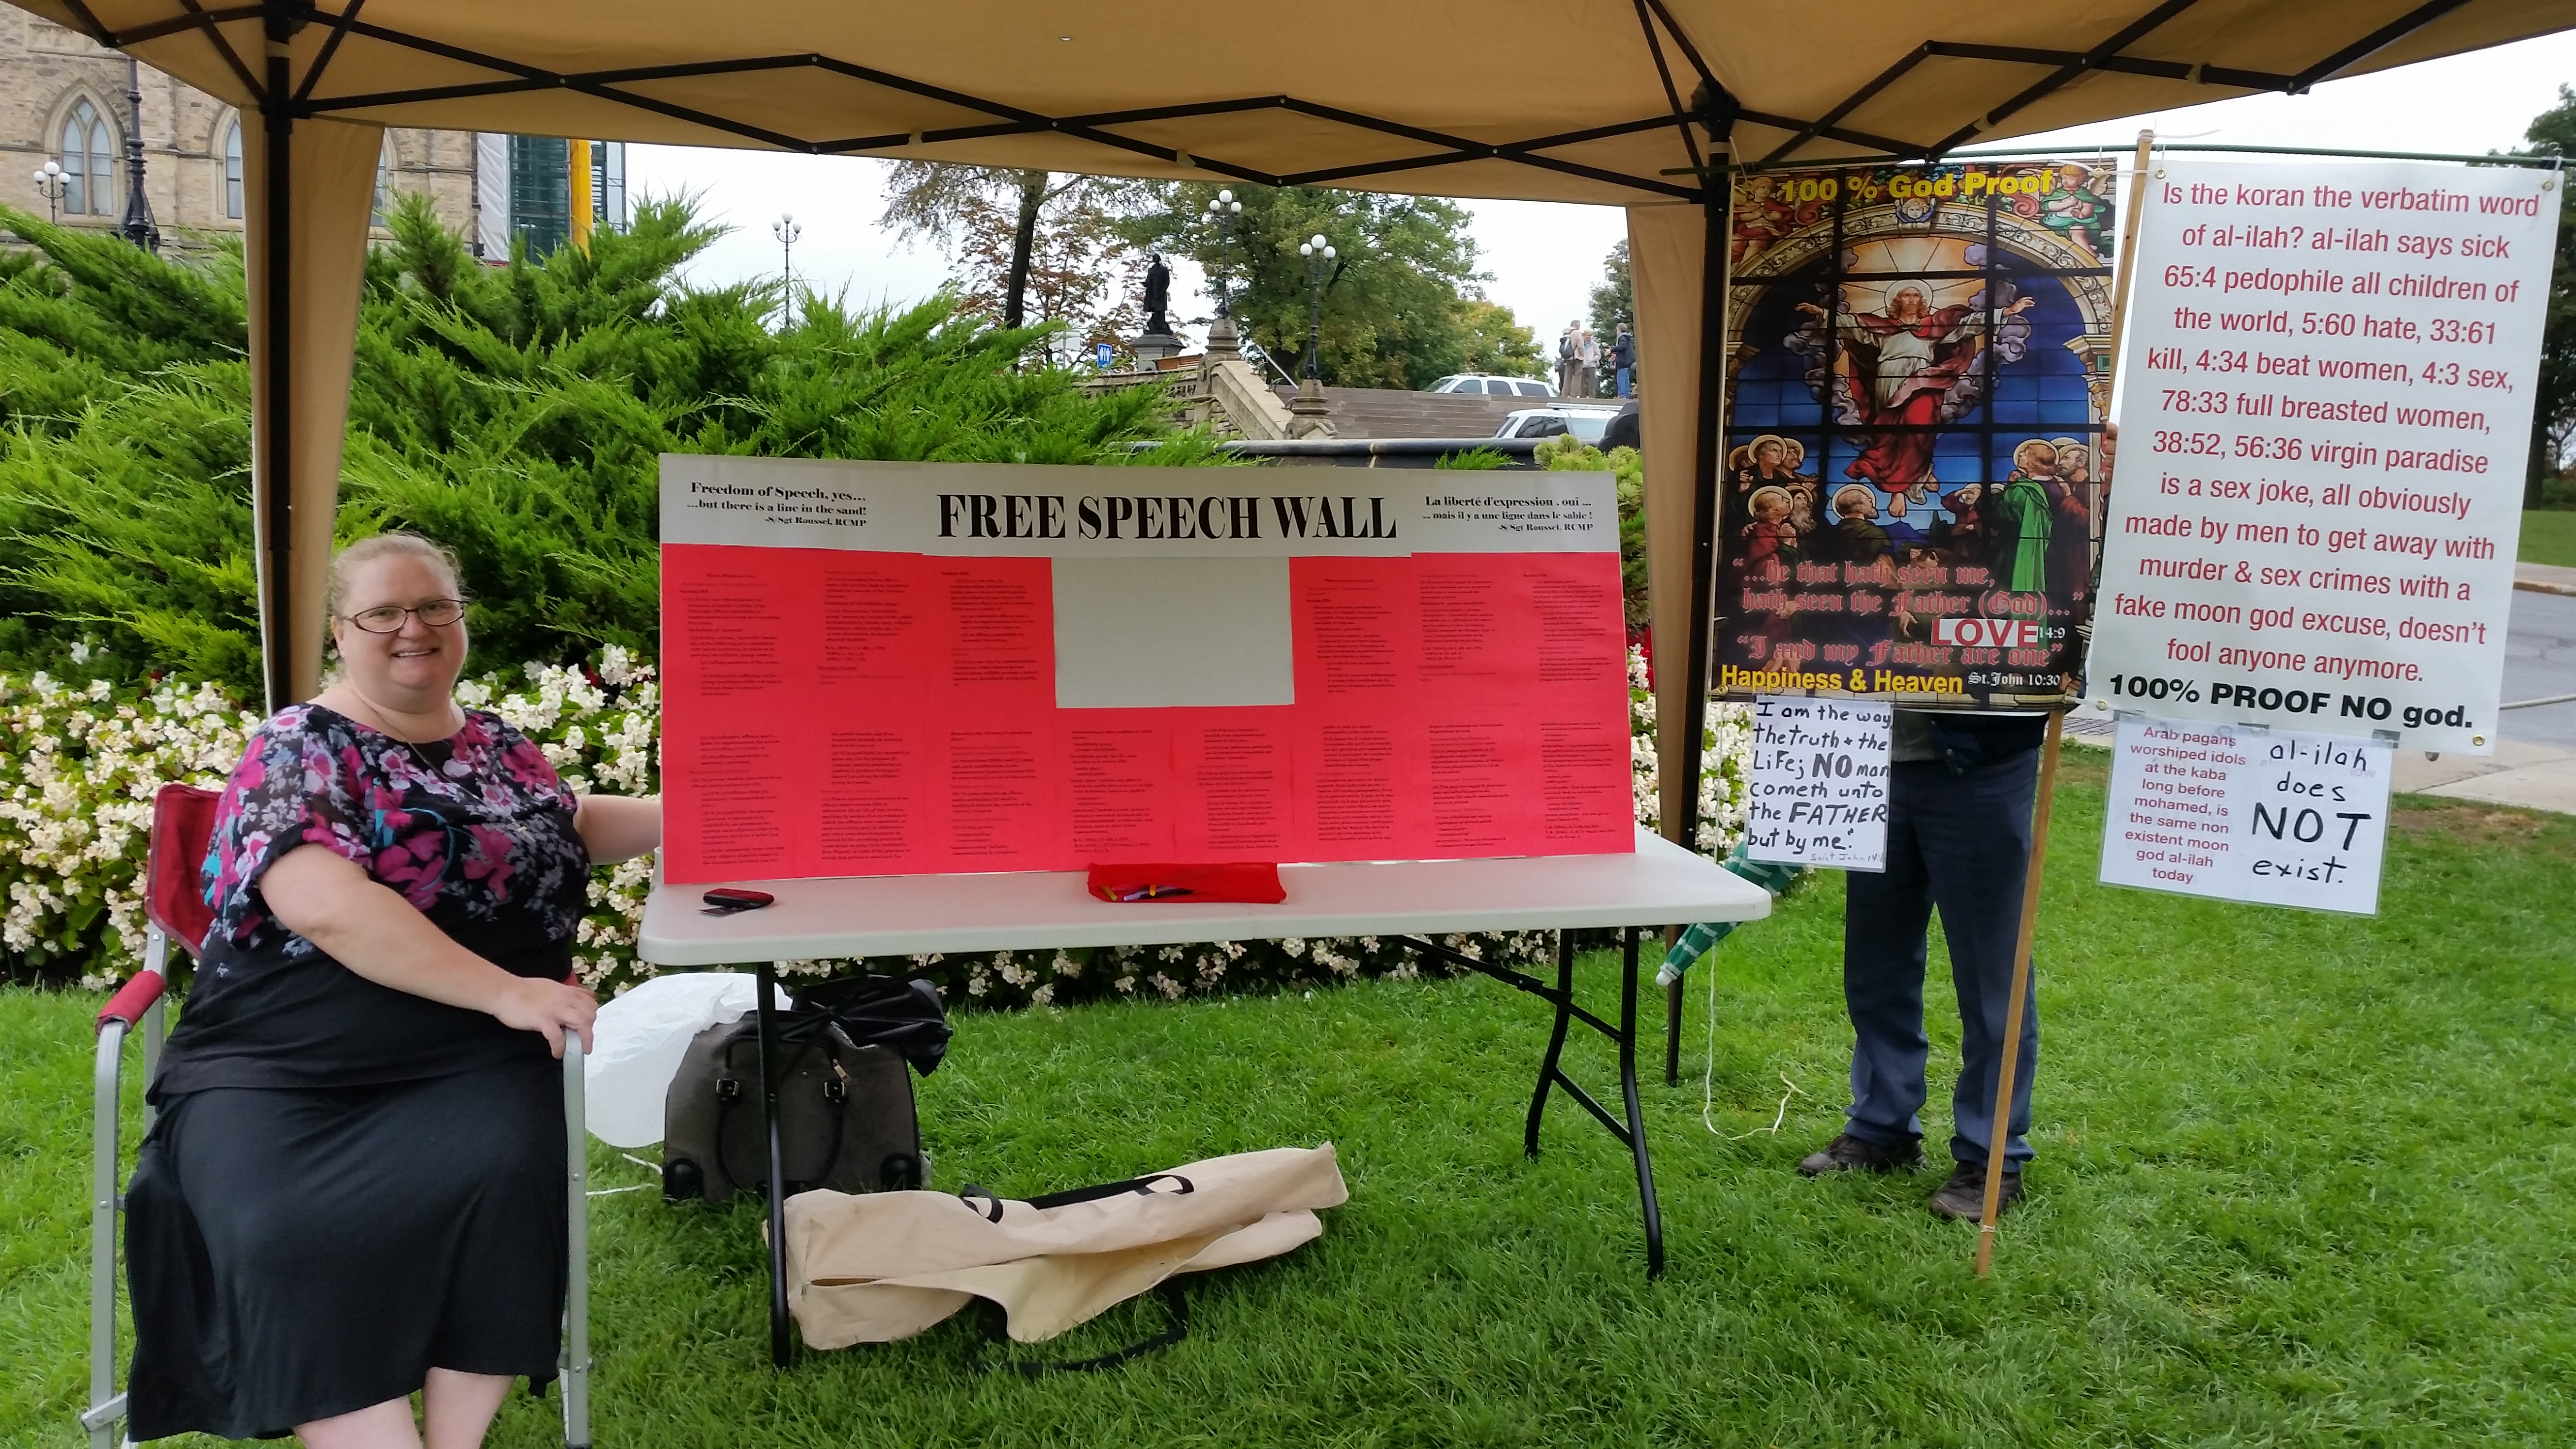 Free speech booth and another unrelated demo guy